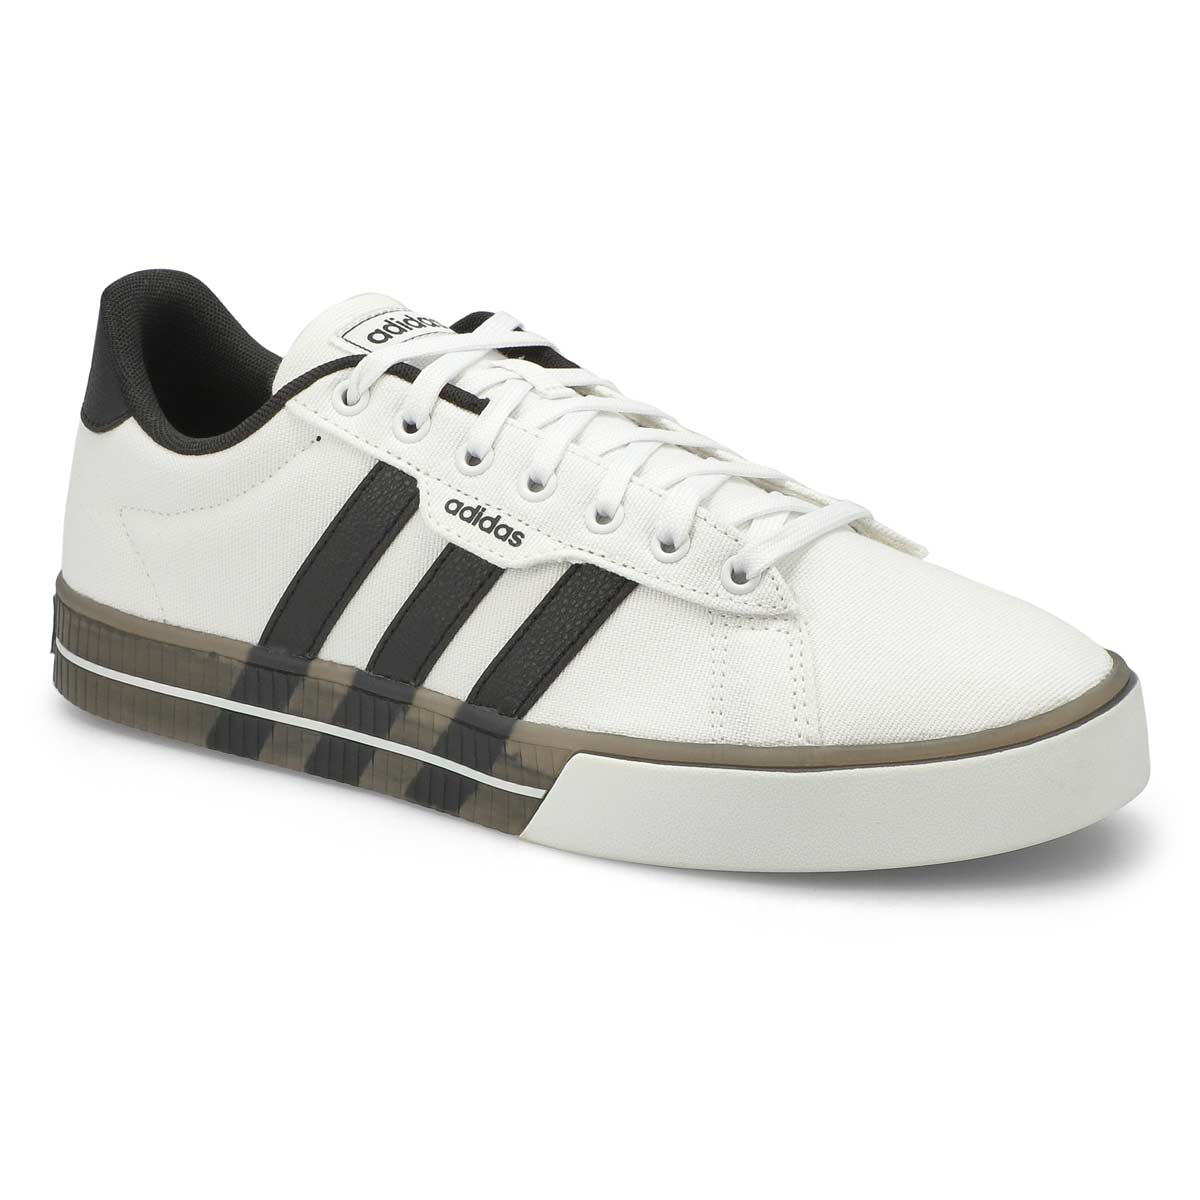 Men's Daily 3.0 Lace Up Sneaker - White/Black